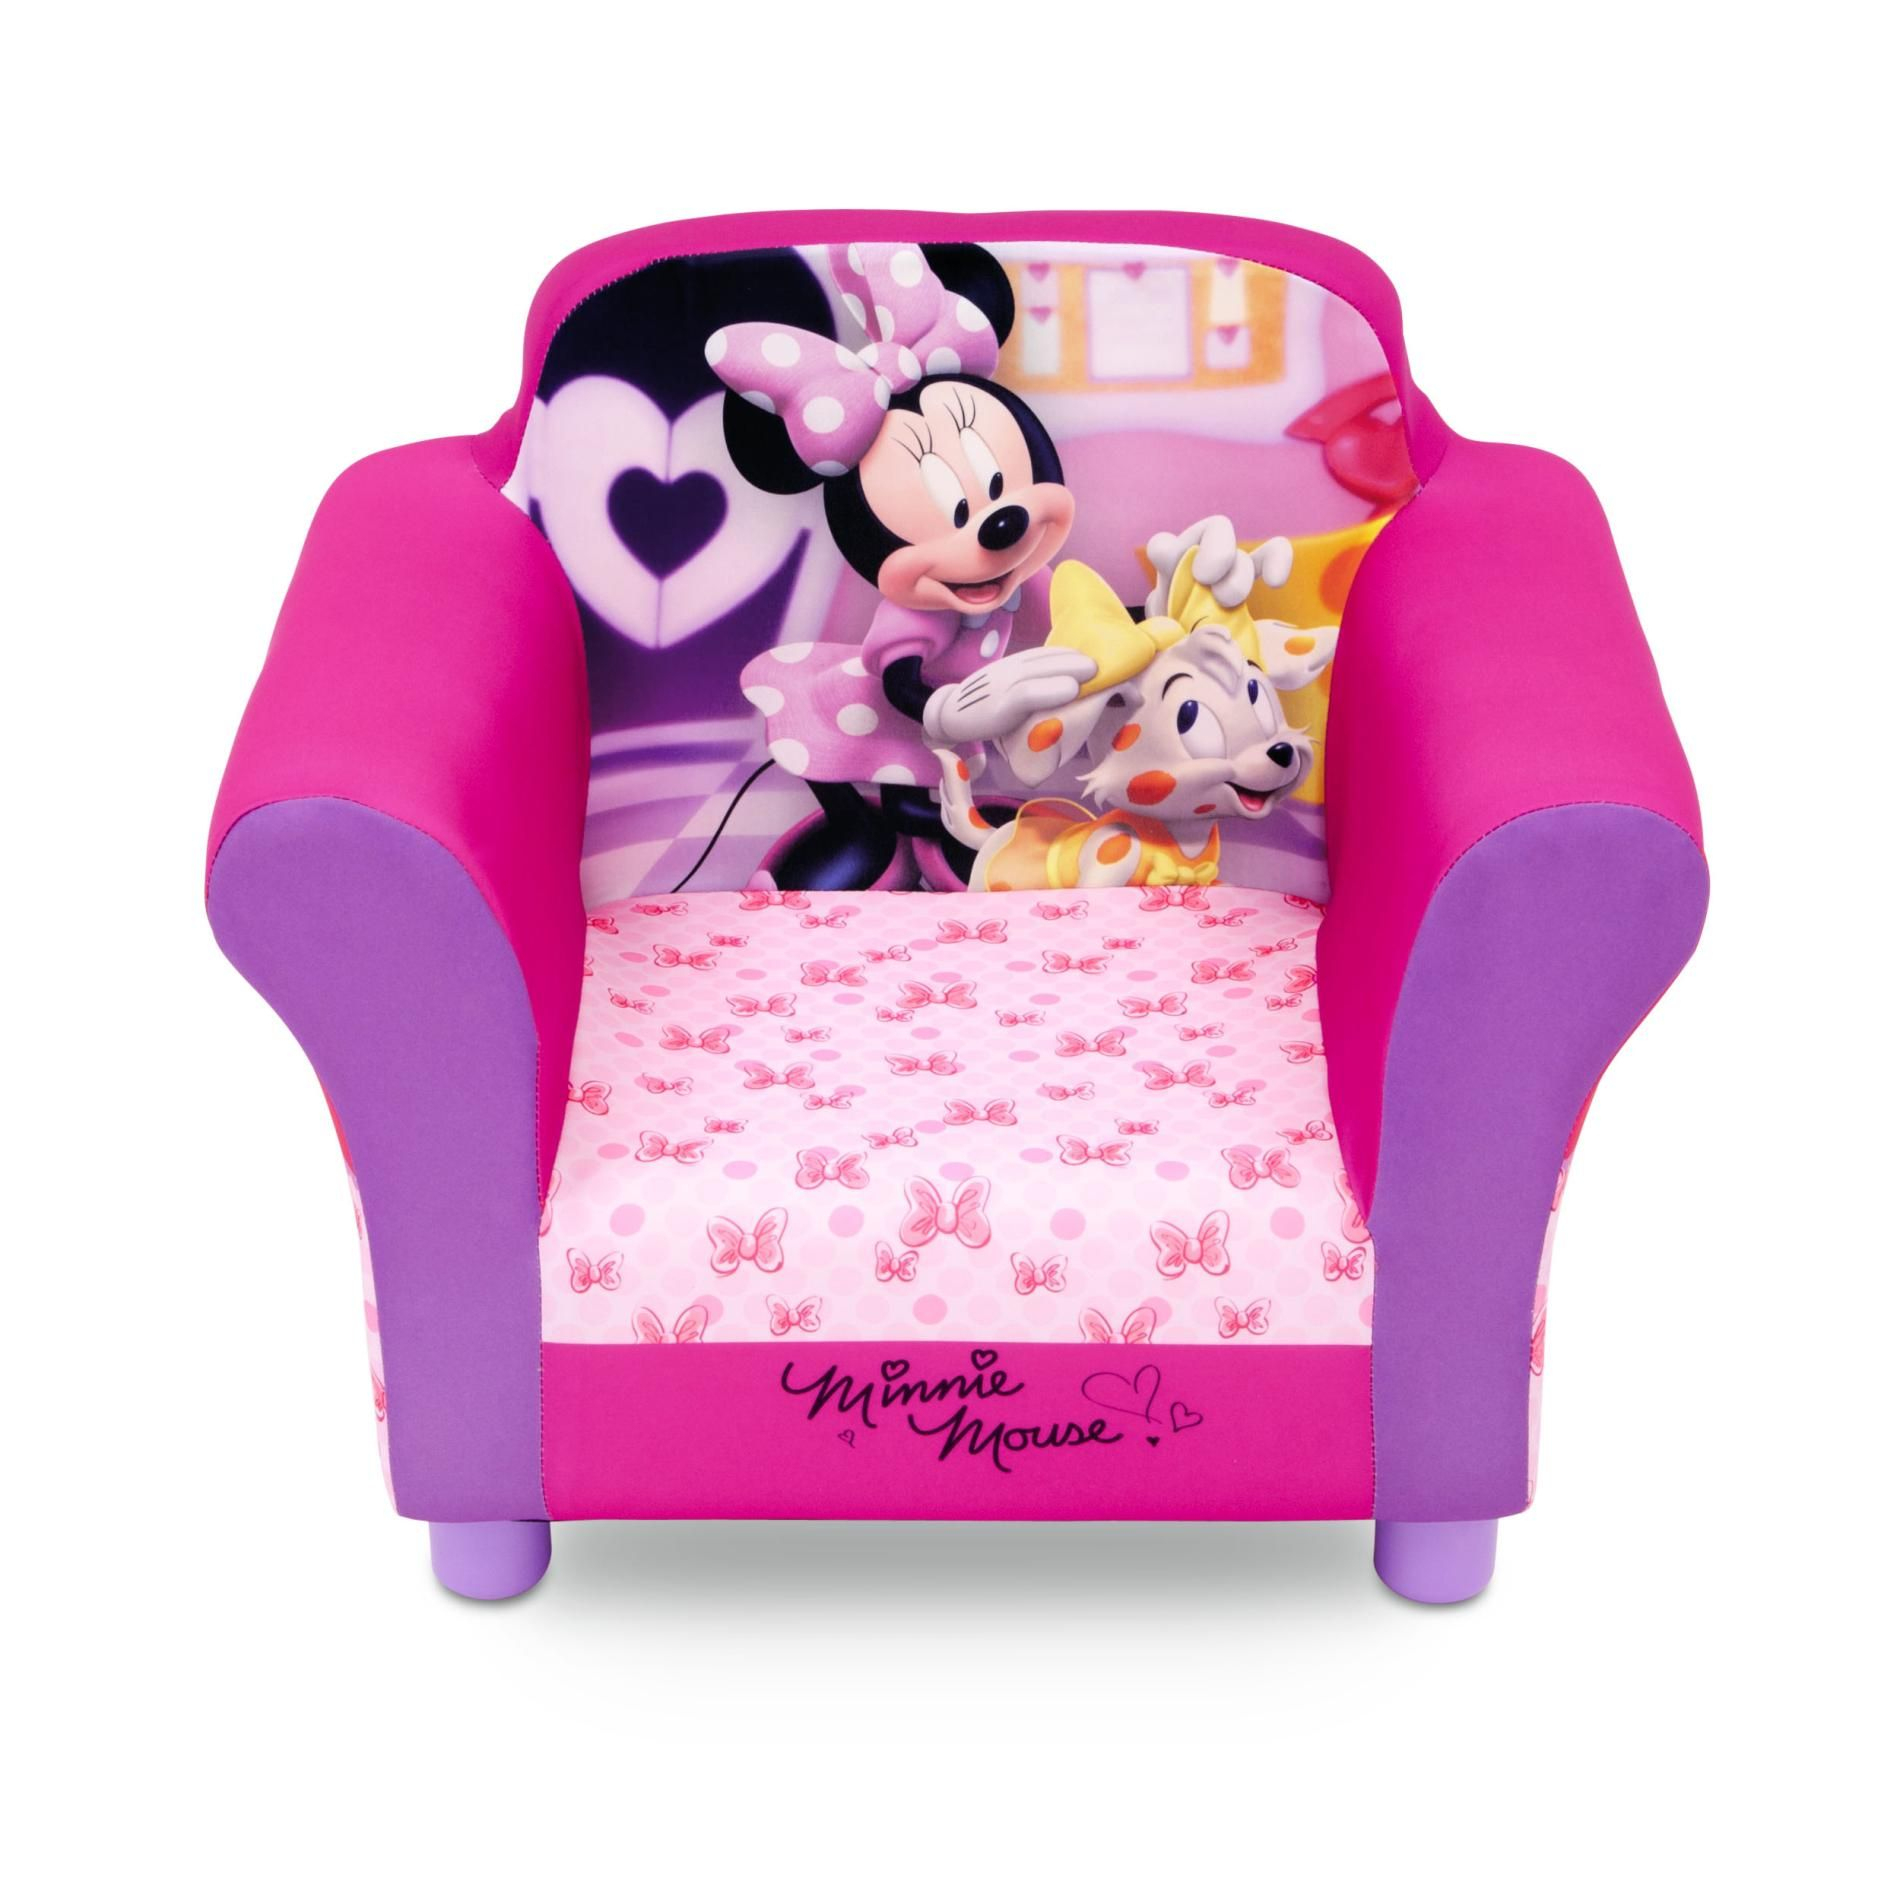 Disney Baby Minnie Mouse Toddler Girl'S Upholstered Chair ... pour Minnie Canapé Mousse Sofa - Disney Baby